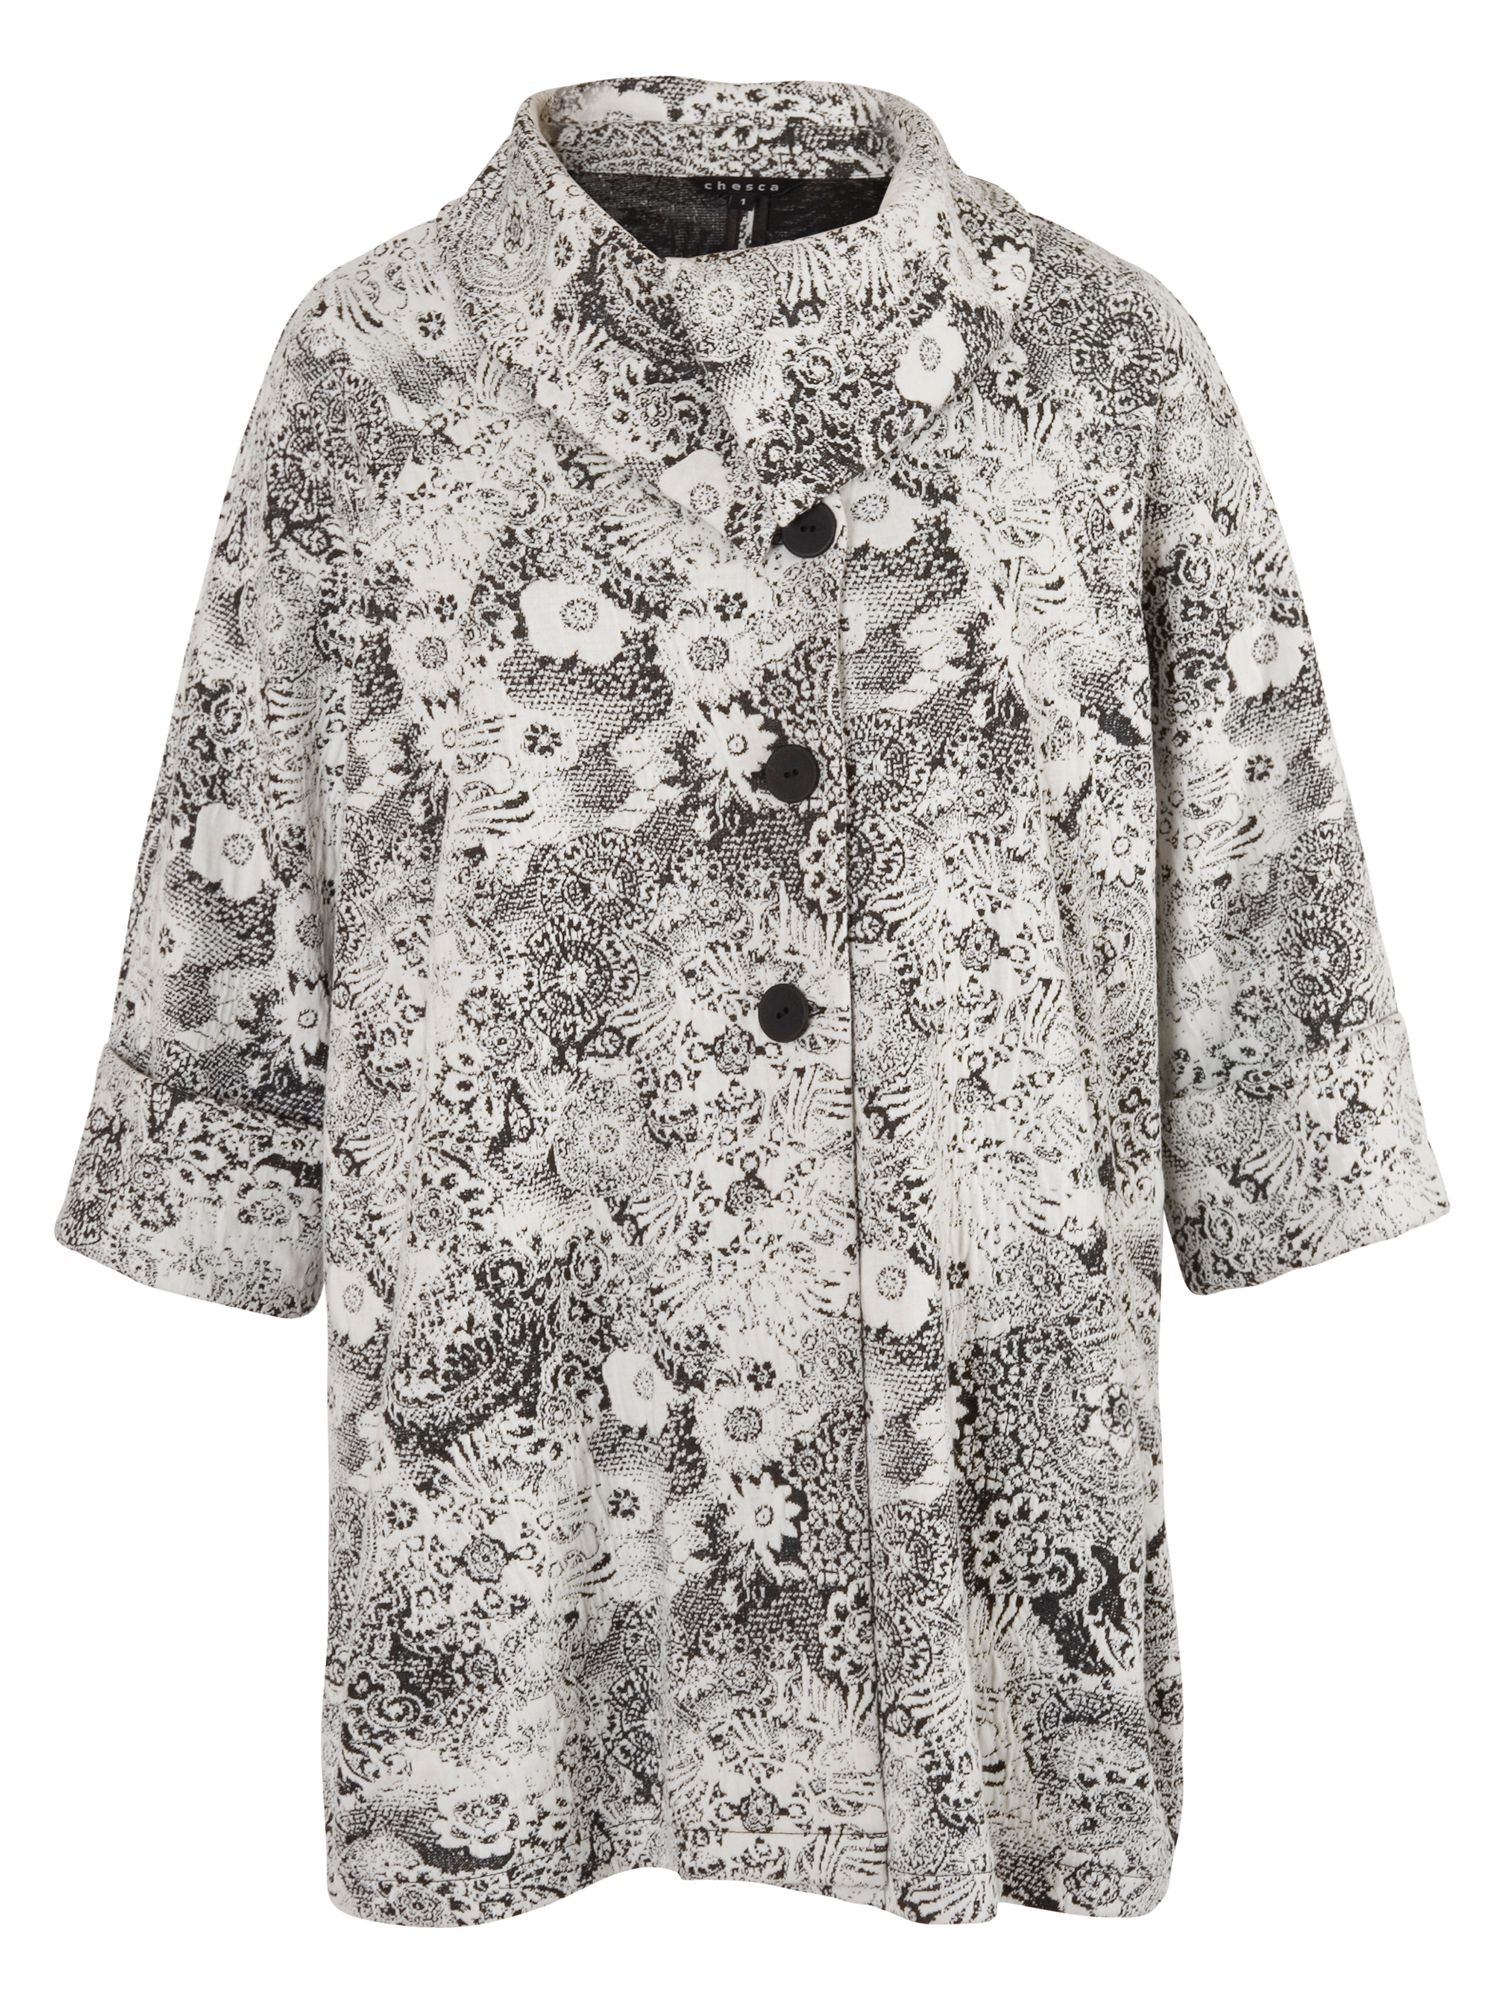 Chesca Ivory Jersey Floral Jacquard Coat, White